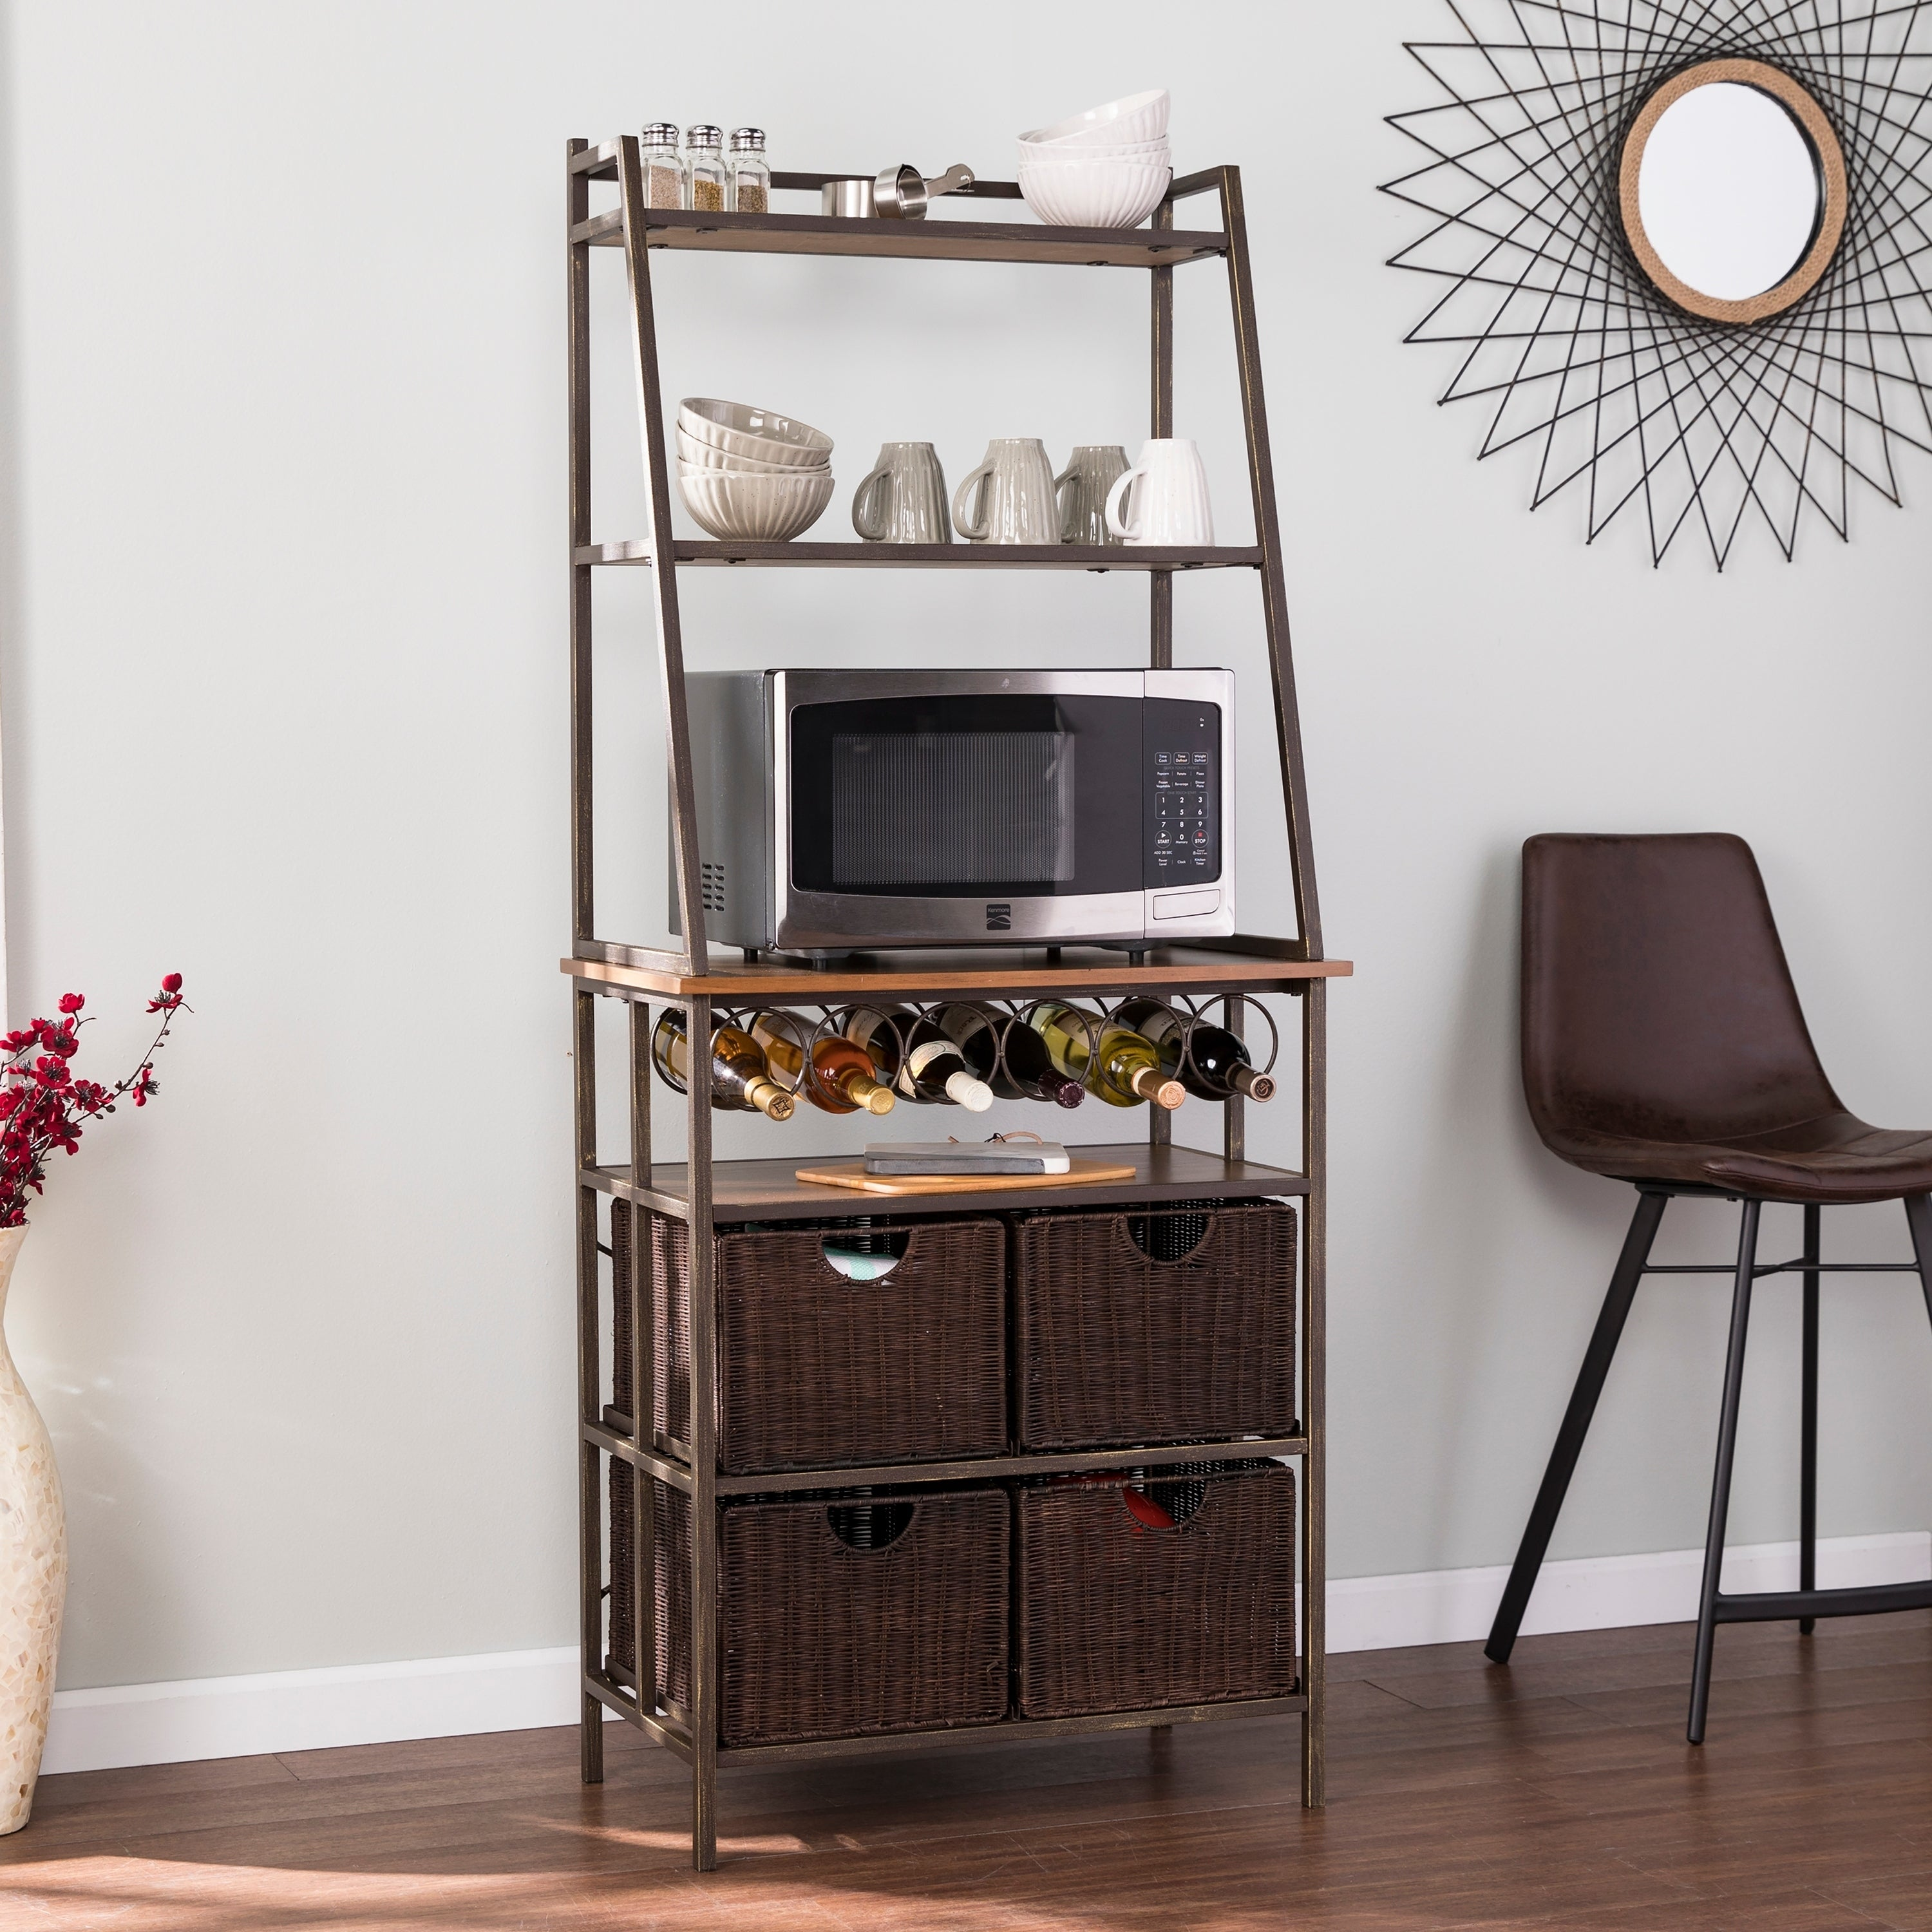 Harper Blvd Archie Metal Bakers Rack W Wine Storage And Baskets On Free Shipping Today 22367210